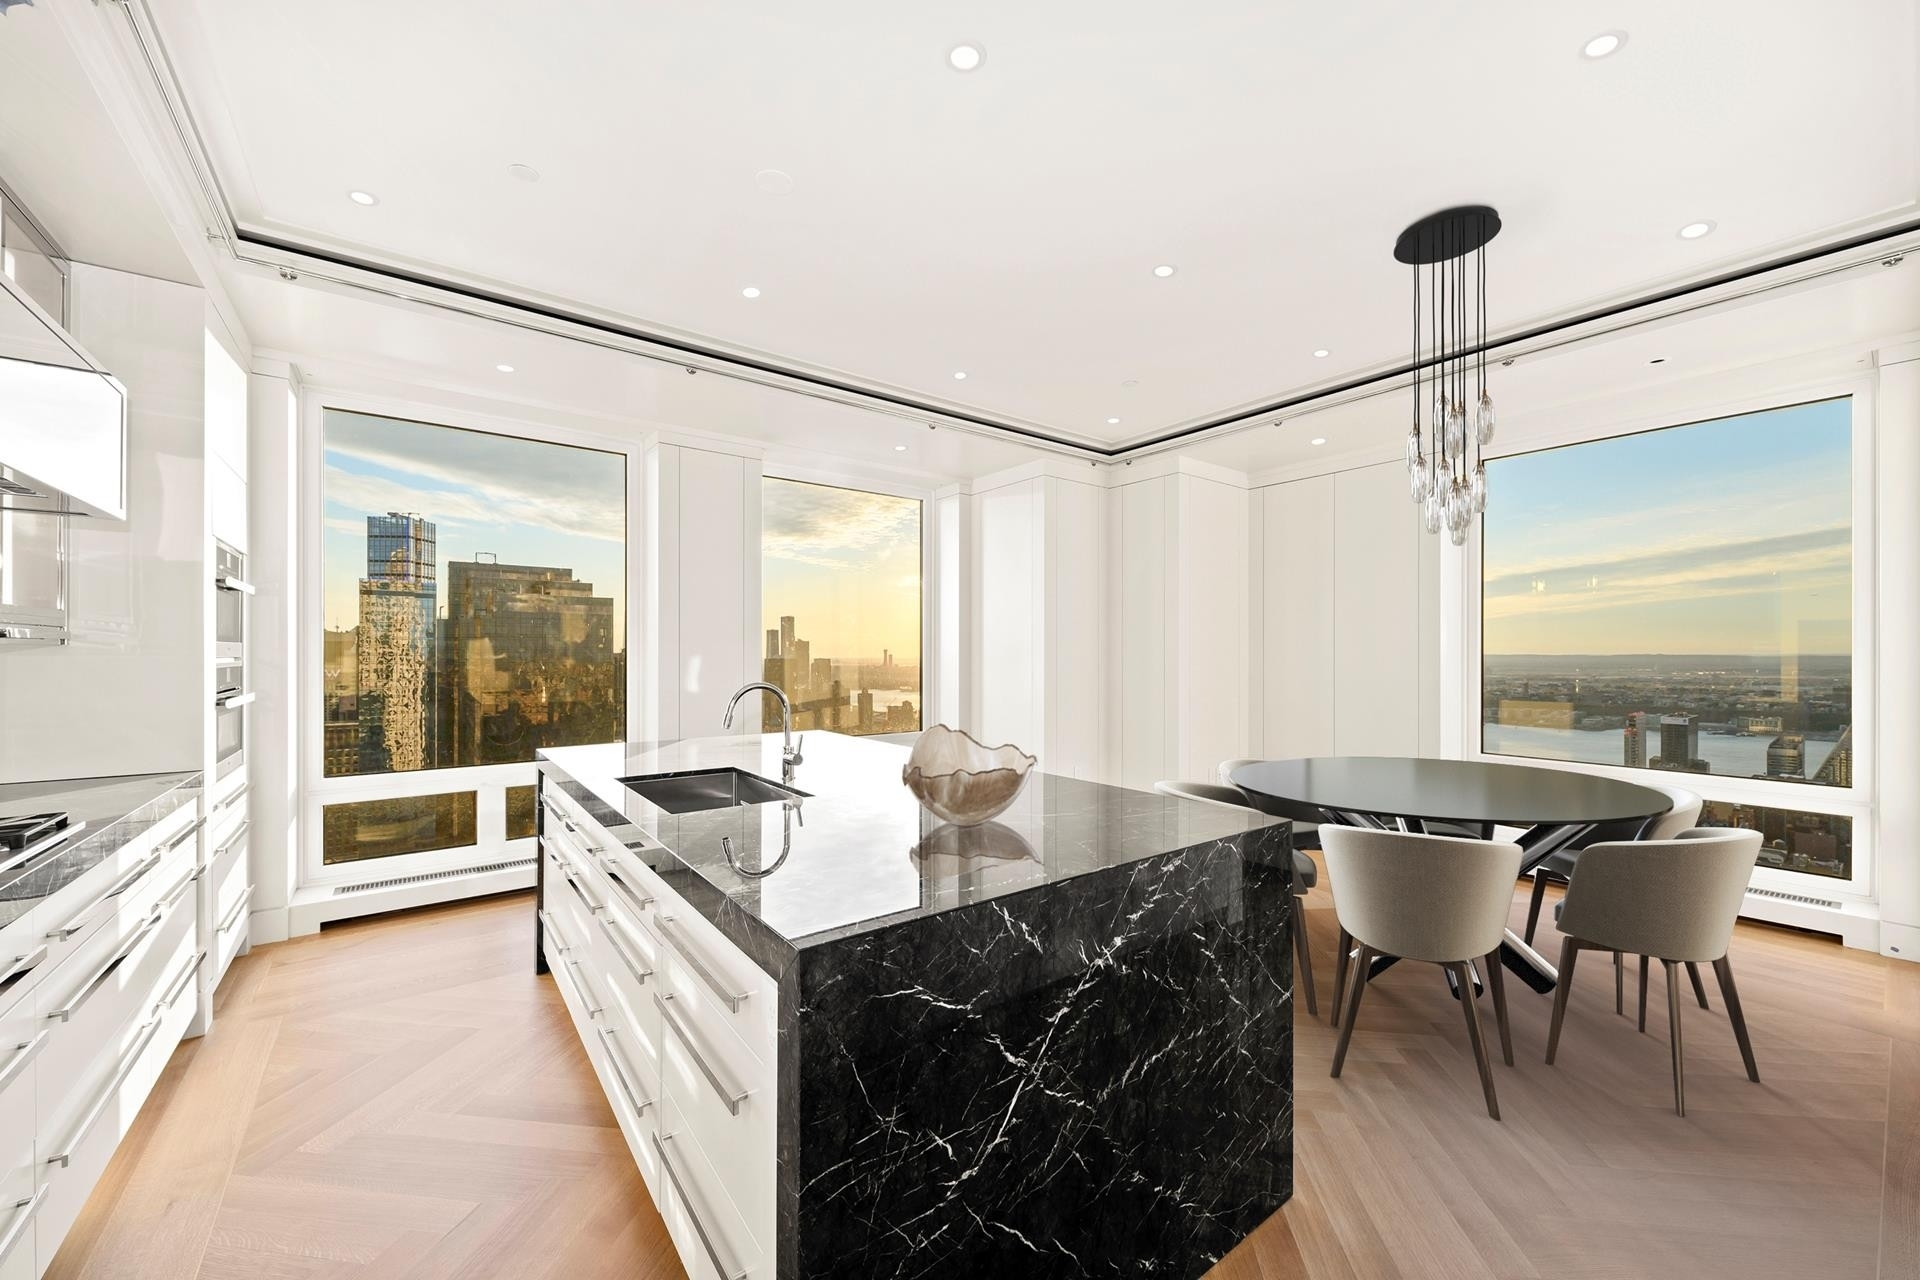 4. Condominiums for Sale at 220 CPS, 220 CENTRAL PARK S, 54/55A Central Park South, New York, NY 10019